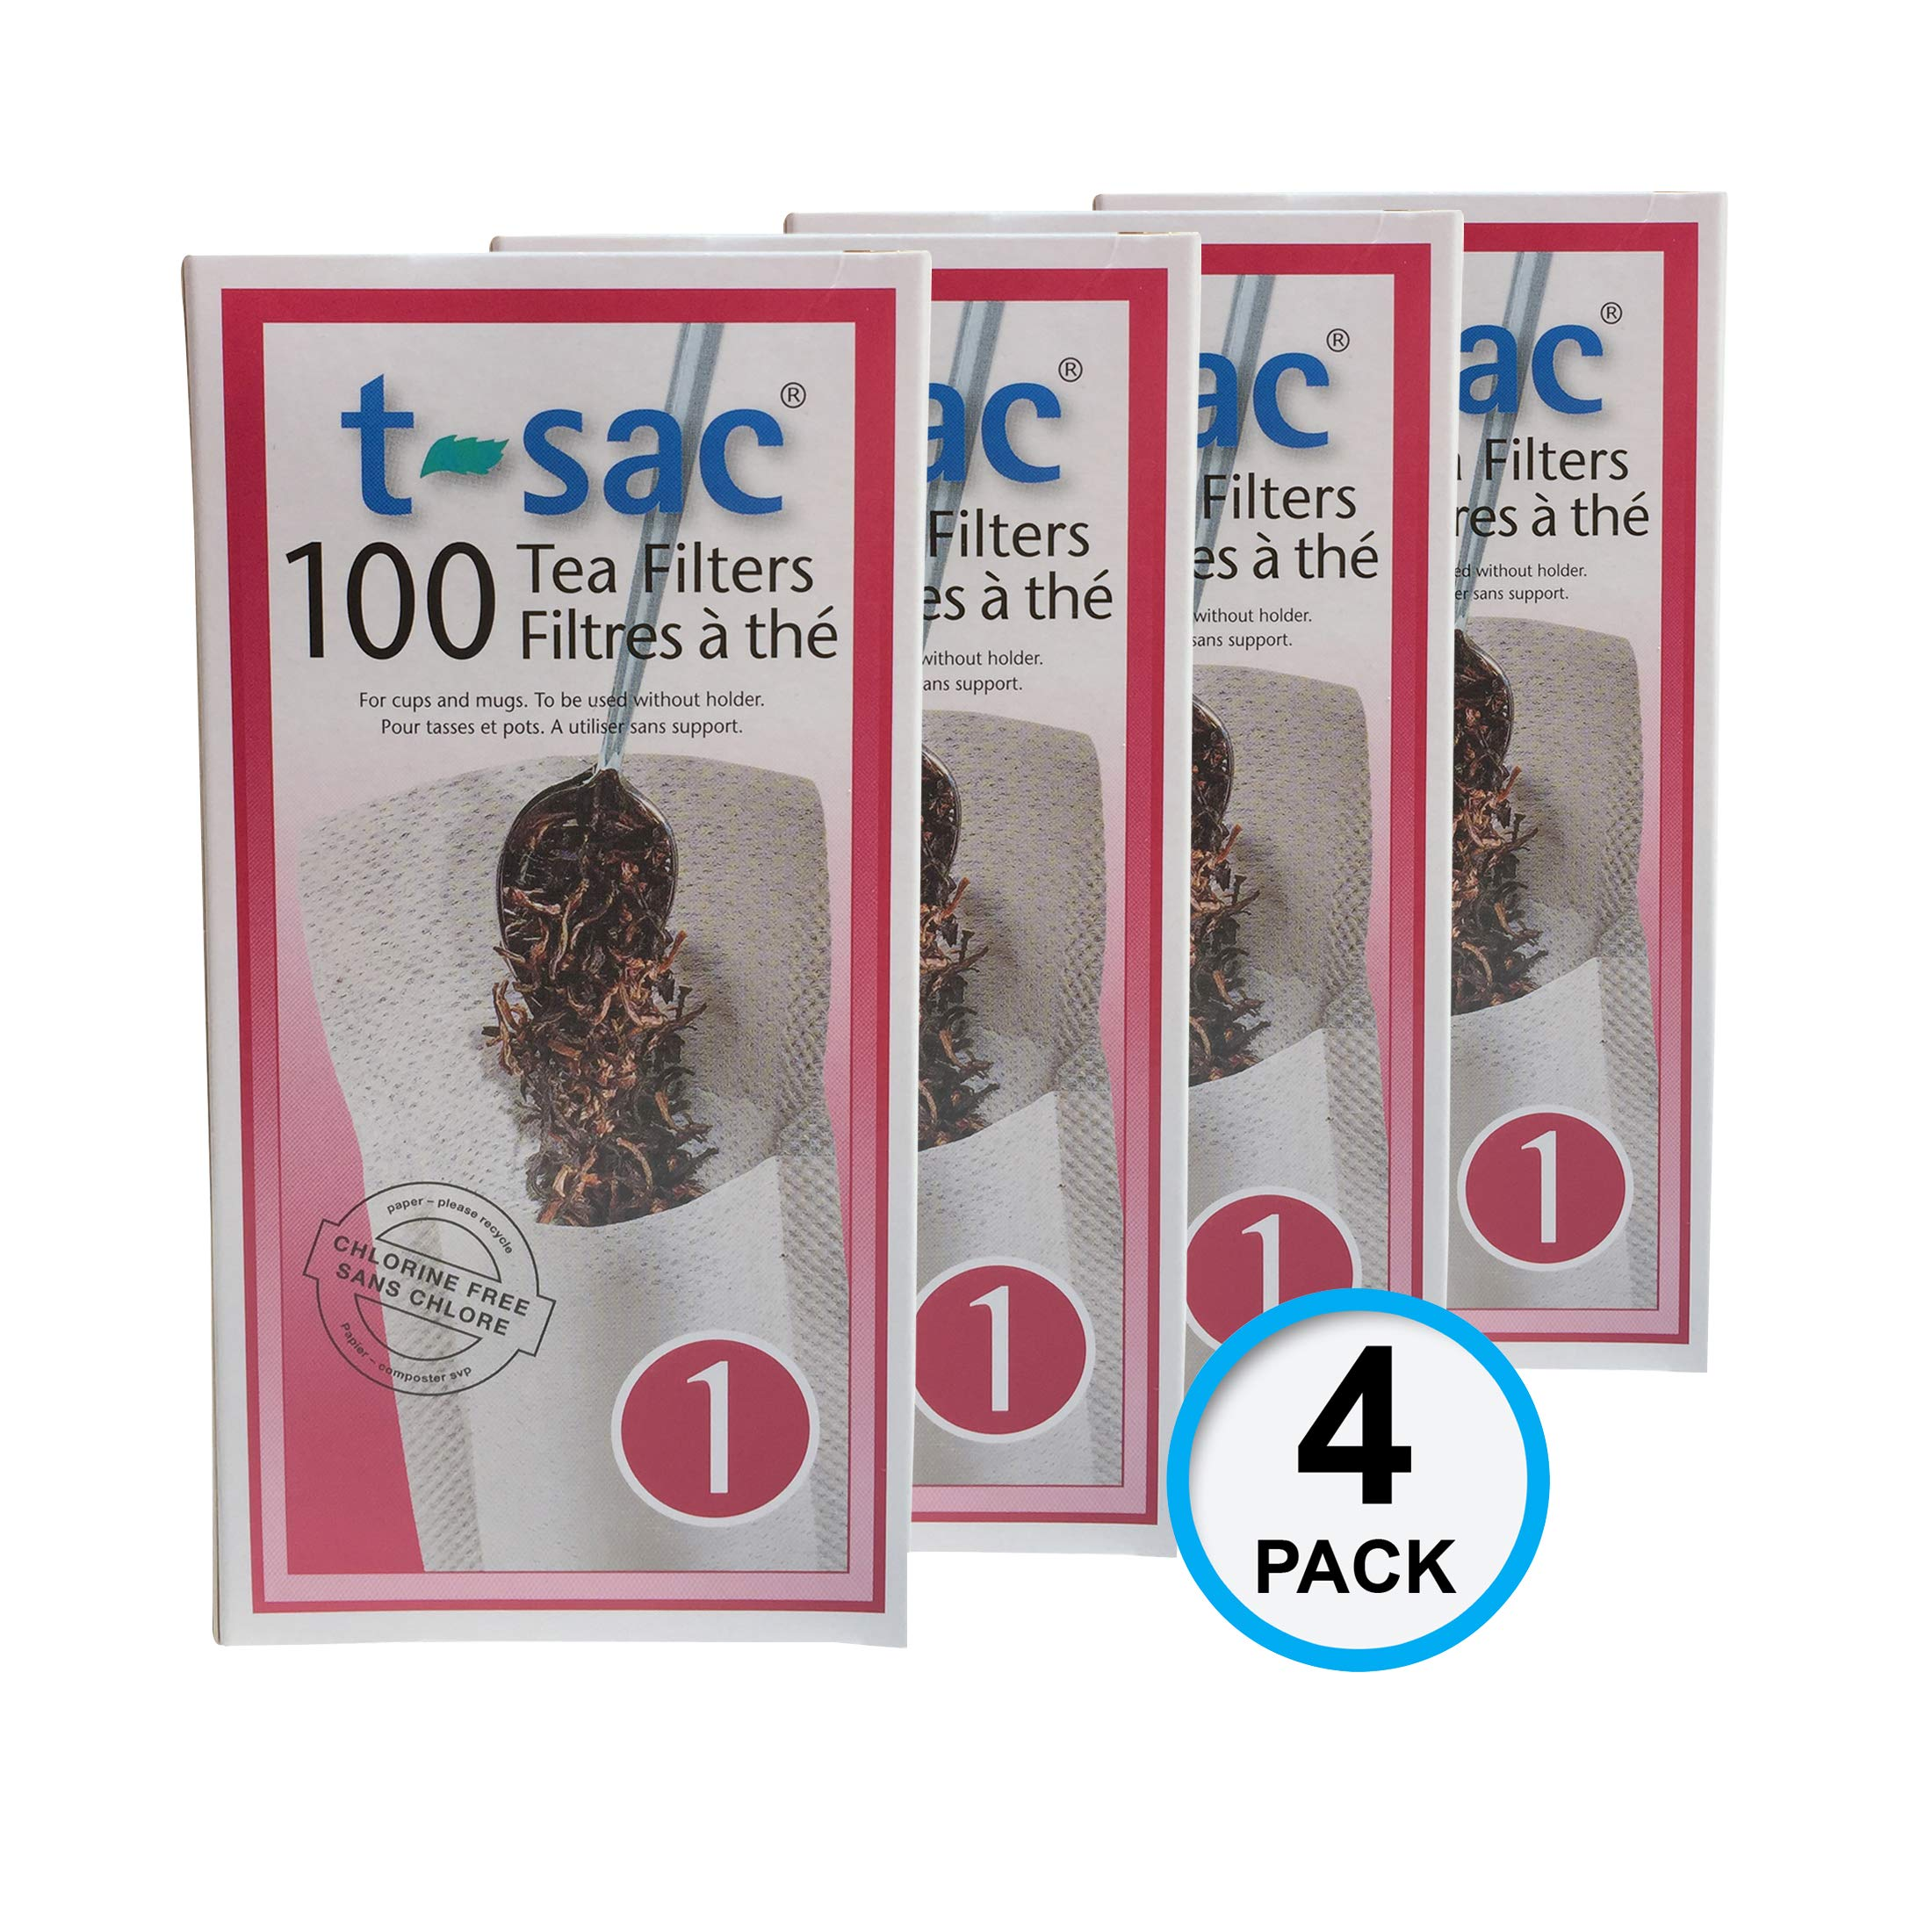 Modern Tea Filter Bags, Disposable Tea Infuser, Size 1, Set of 400 Filters - 4 Boxes - Heat Sealable, Natural, Easy to Use Anywhere, No Cleanup - Perfect for Teas, Coffee & Herbs - from Magic Teafit by Magic Teafit